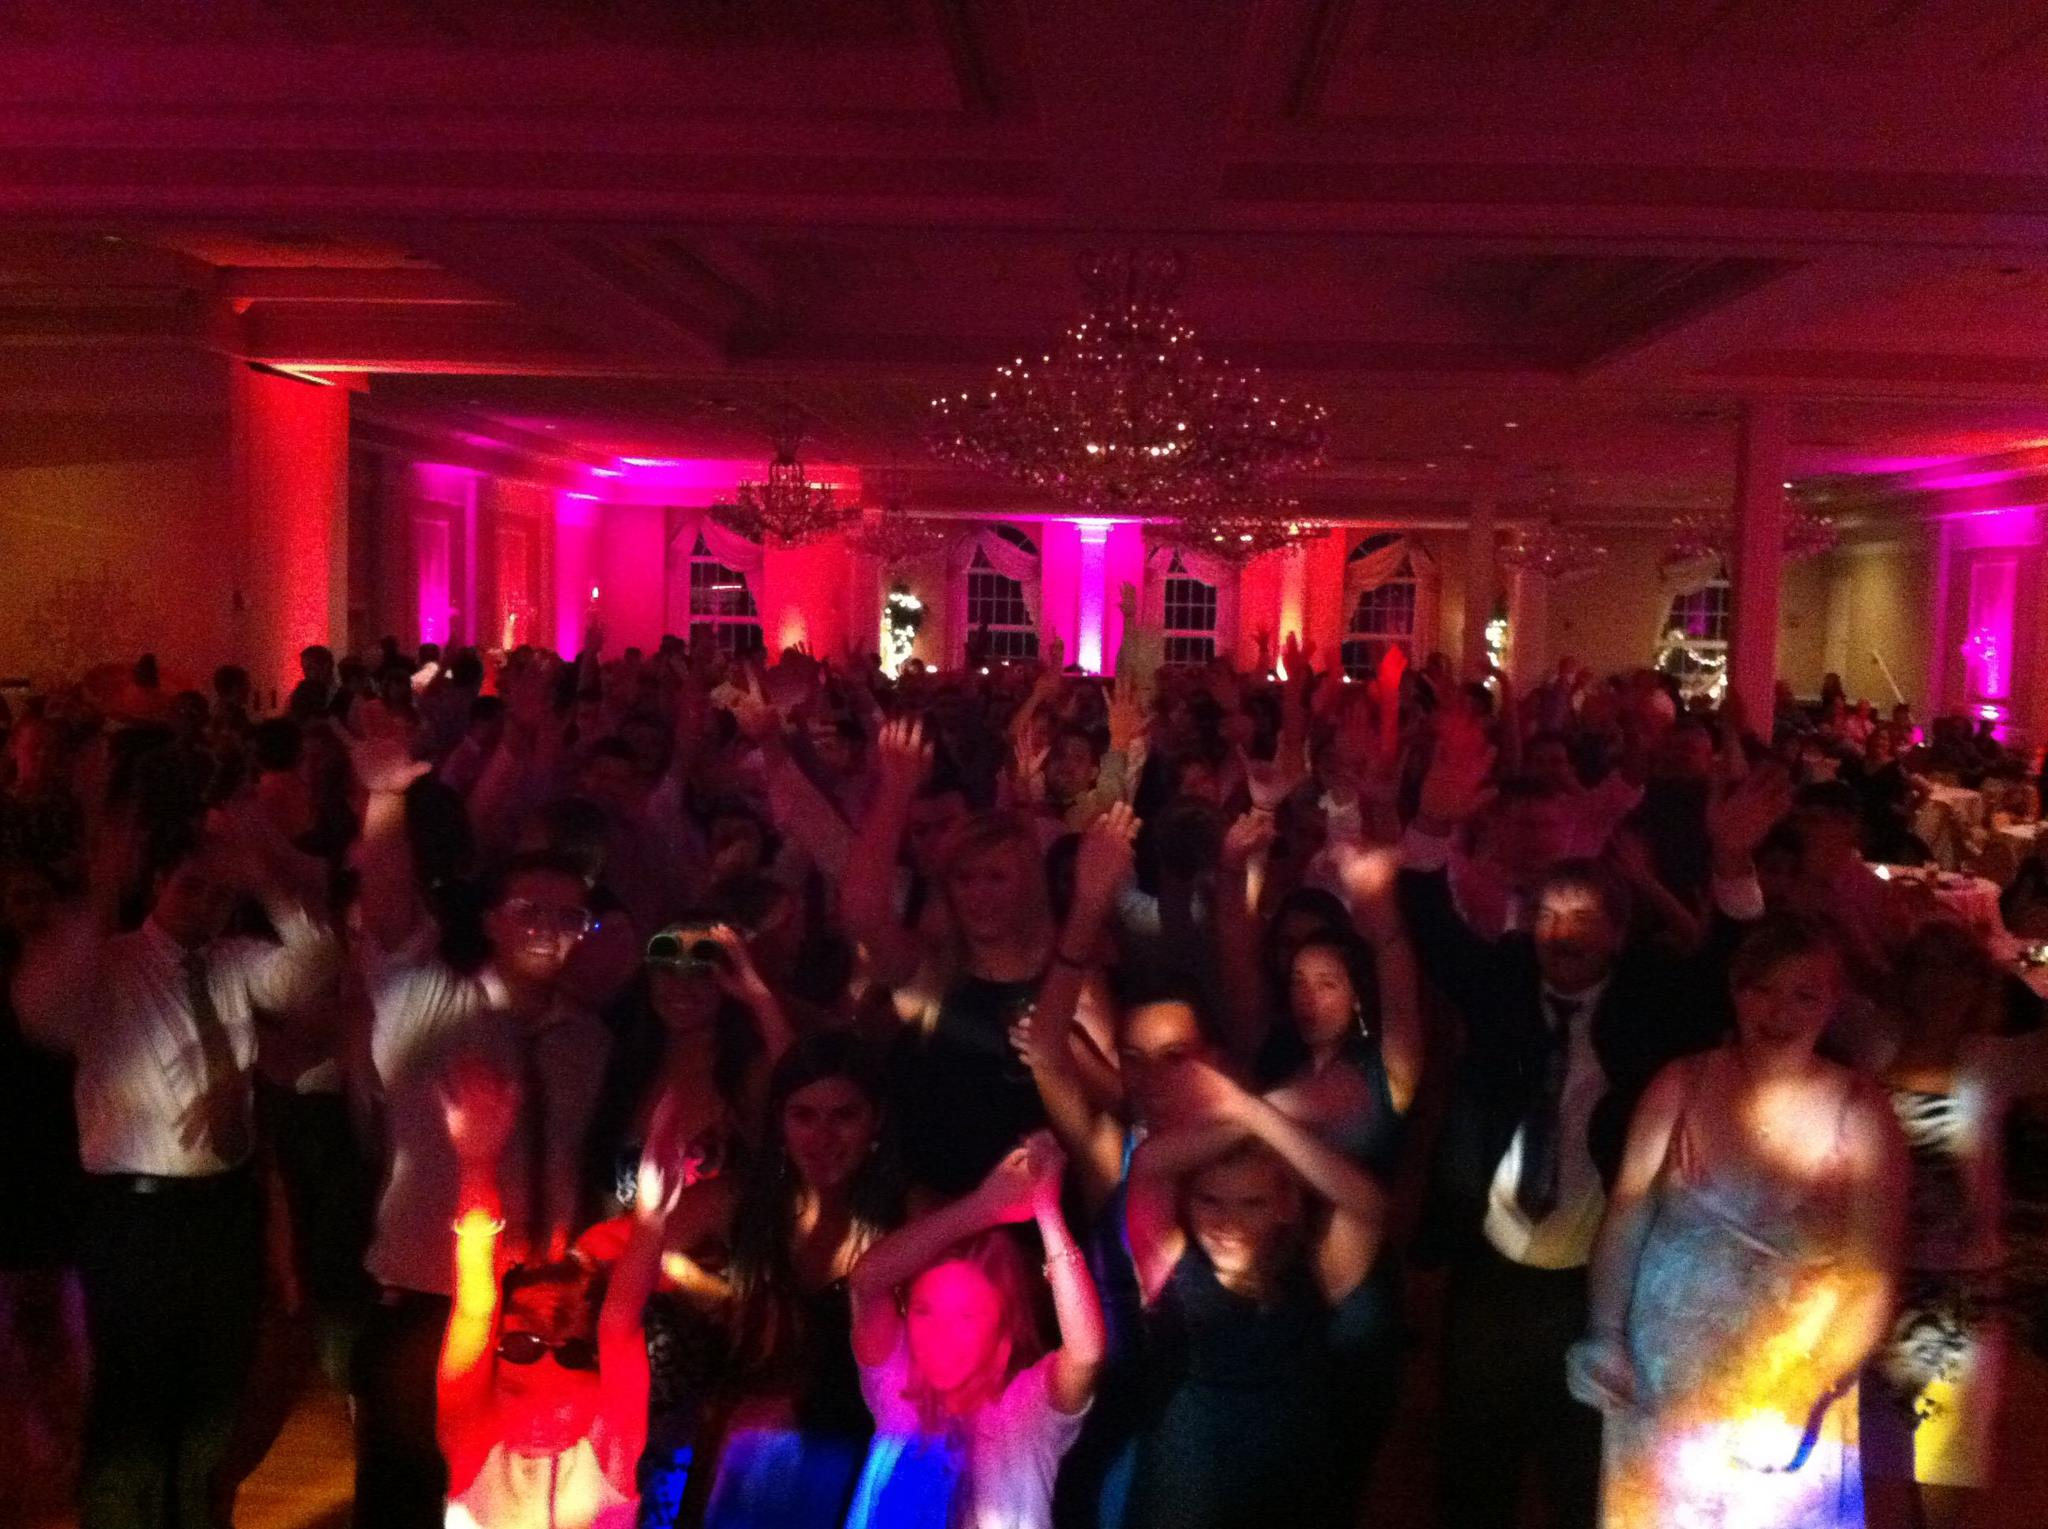 Dance floor with DJ lighting